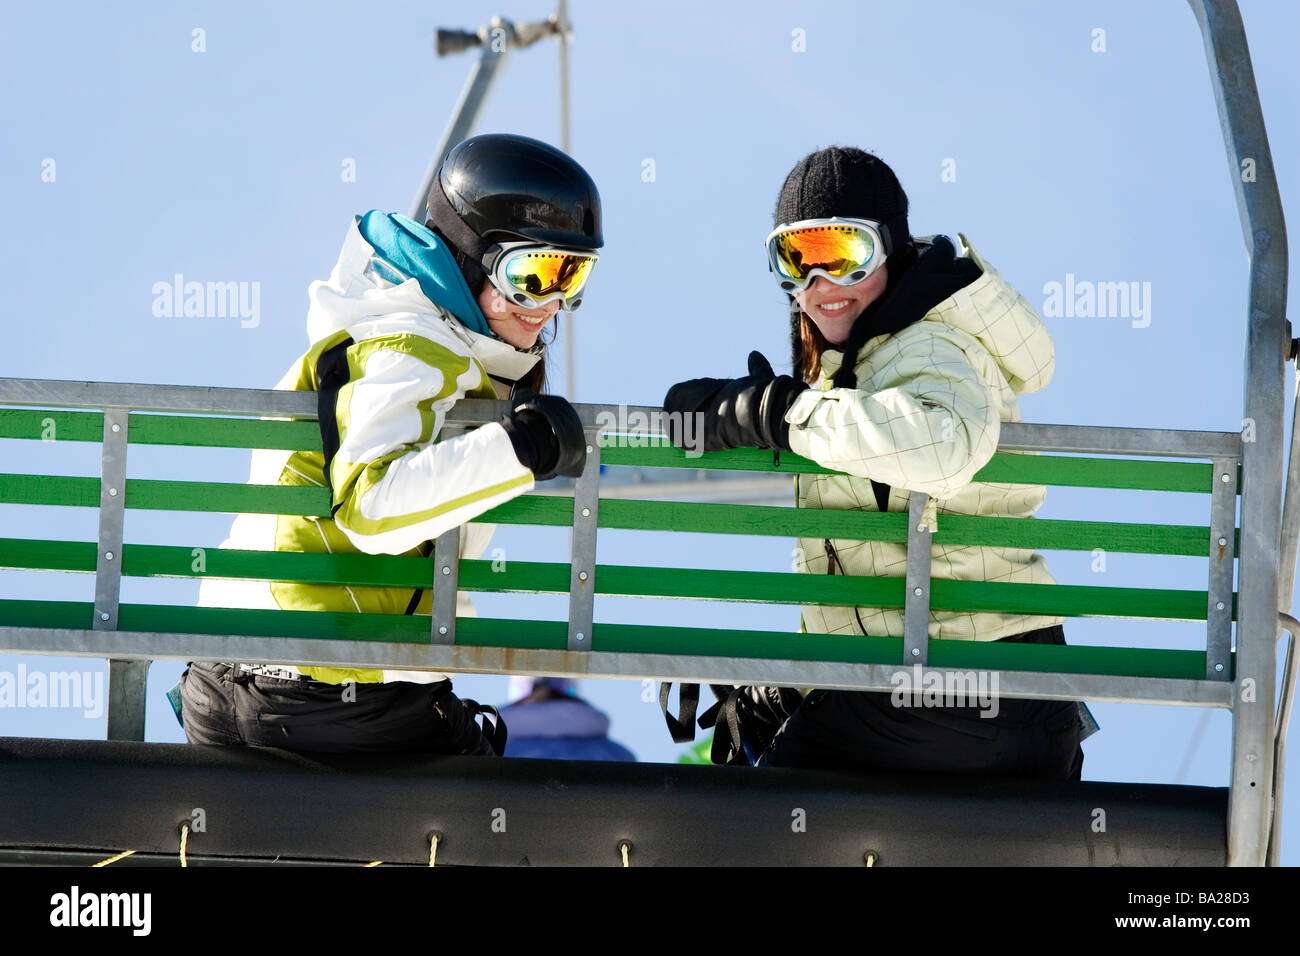 Two girls on chairlift ready to go skiing - Stock Image